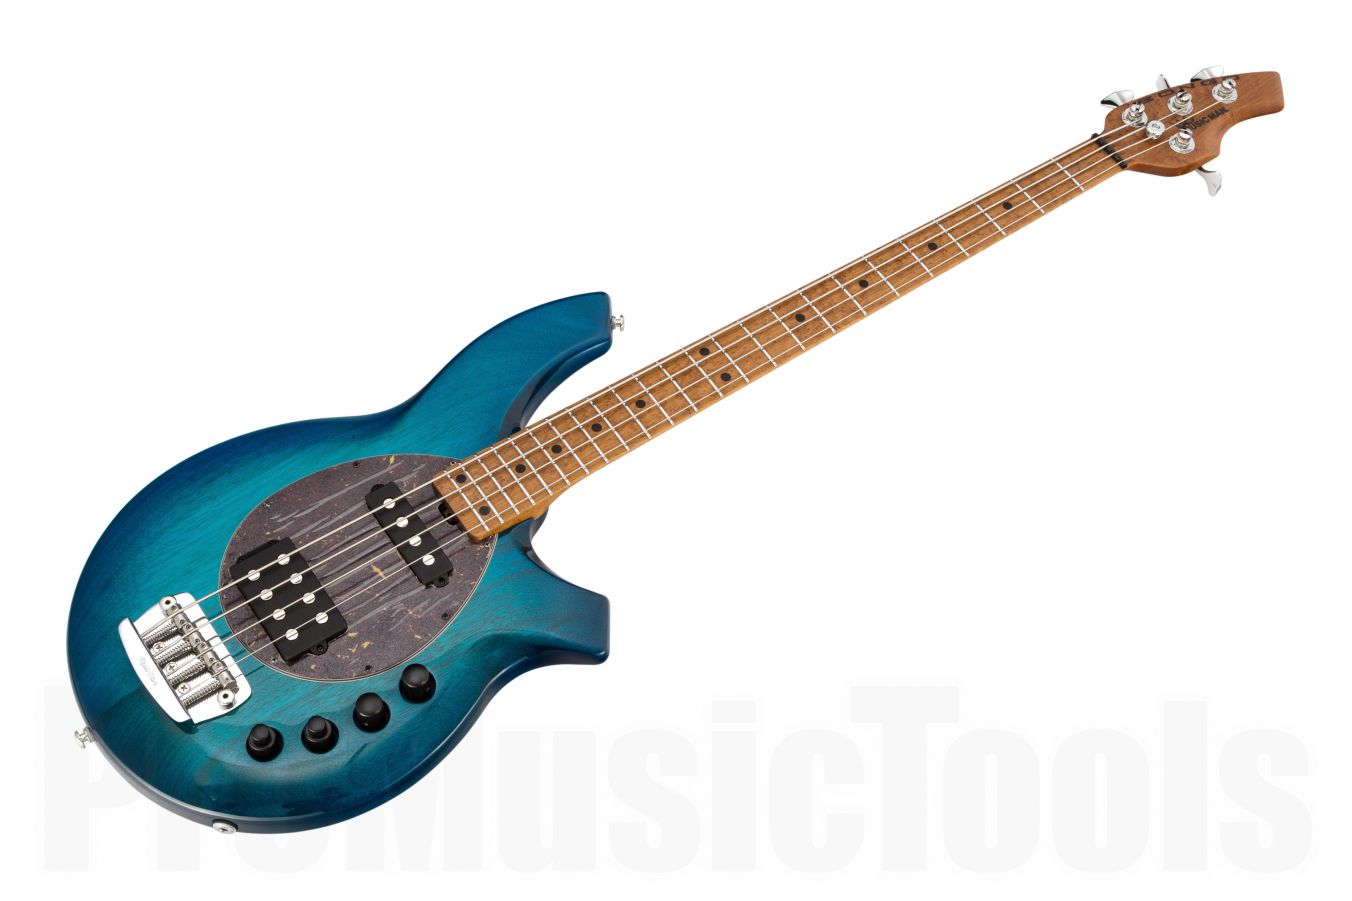 Music Man USA Bongo 4 HS NB - PDN Neptune Blue Roasted Neck Limited Edition MN PV